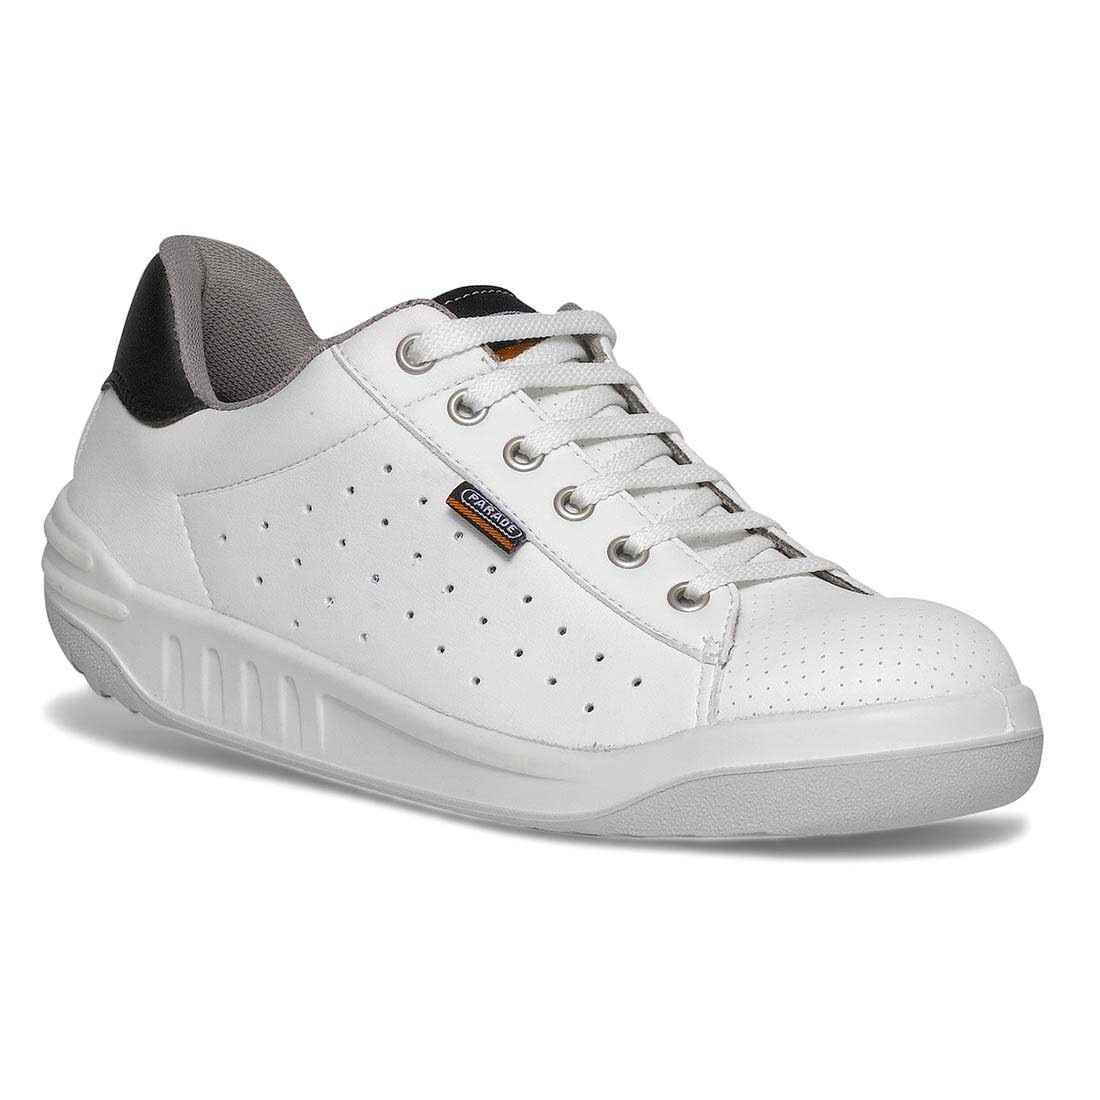 Parade Joppa White Unisex Safety Work trainers with VPS Comfort System